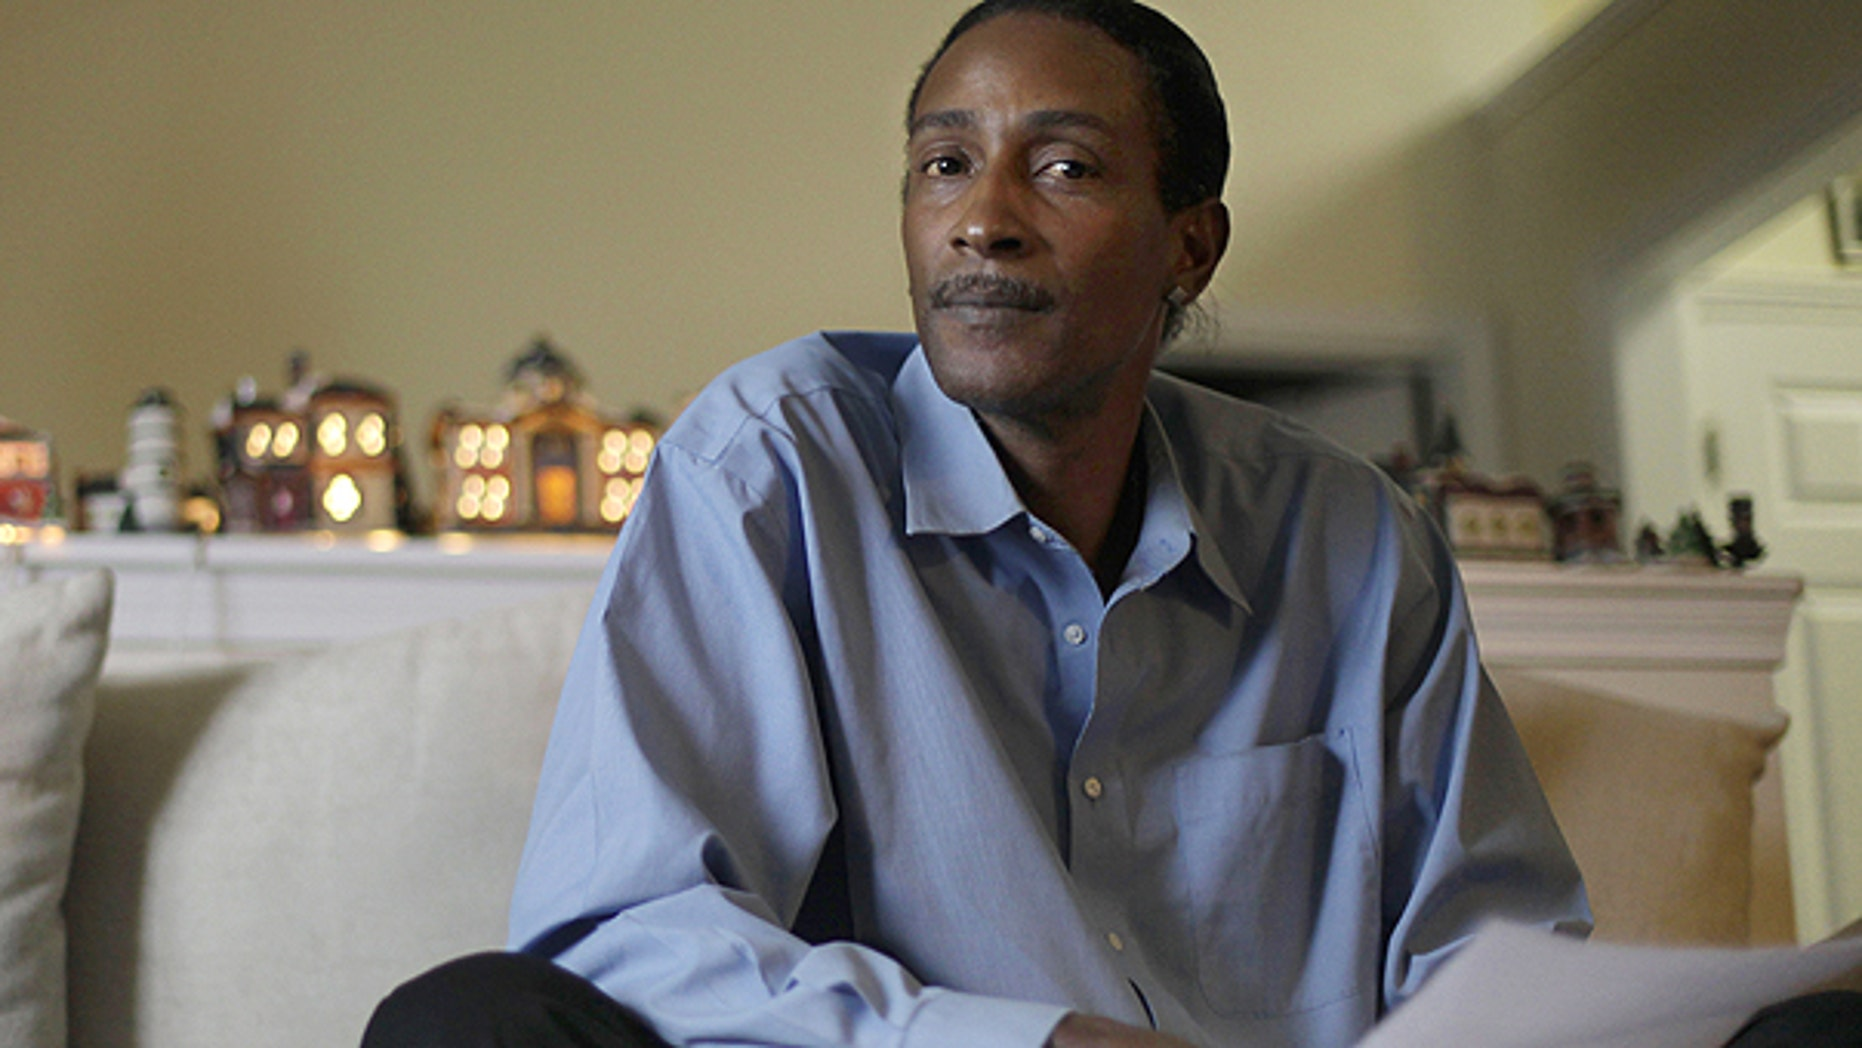 Nov. 30: Wayne Pittman, 46, sits in his Lawrenceville, Ga., home looking over unemployment papers as his extended benefits are set to expire unless Congress passes a vote to extend them.